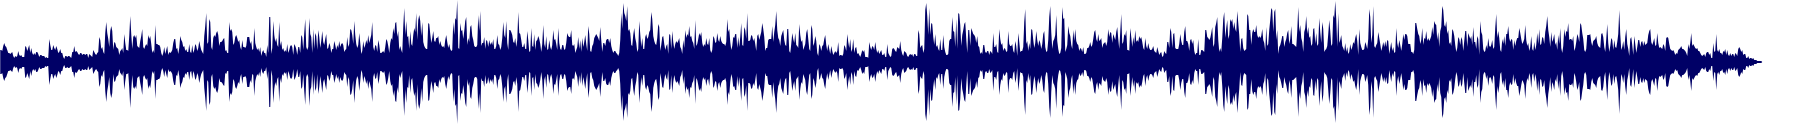 waveform of track #70571